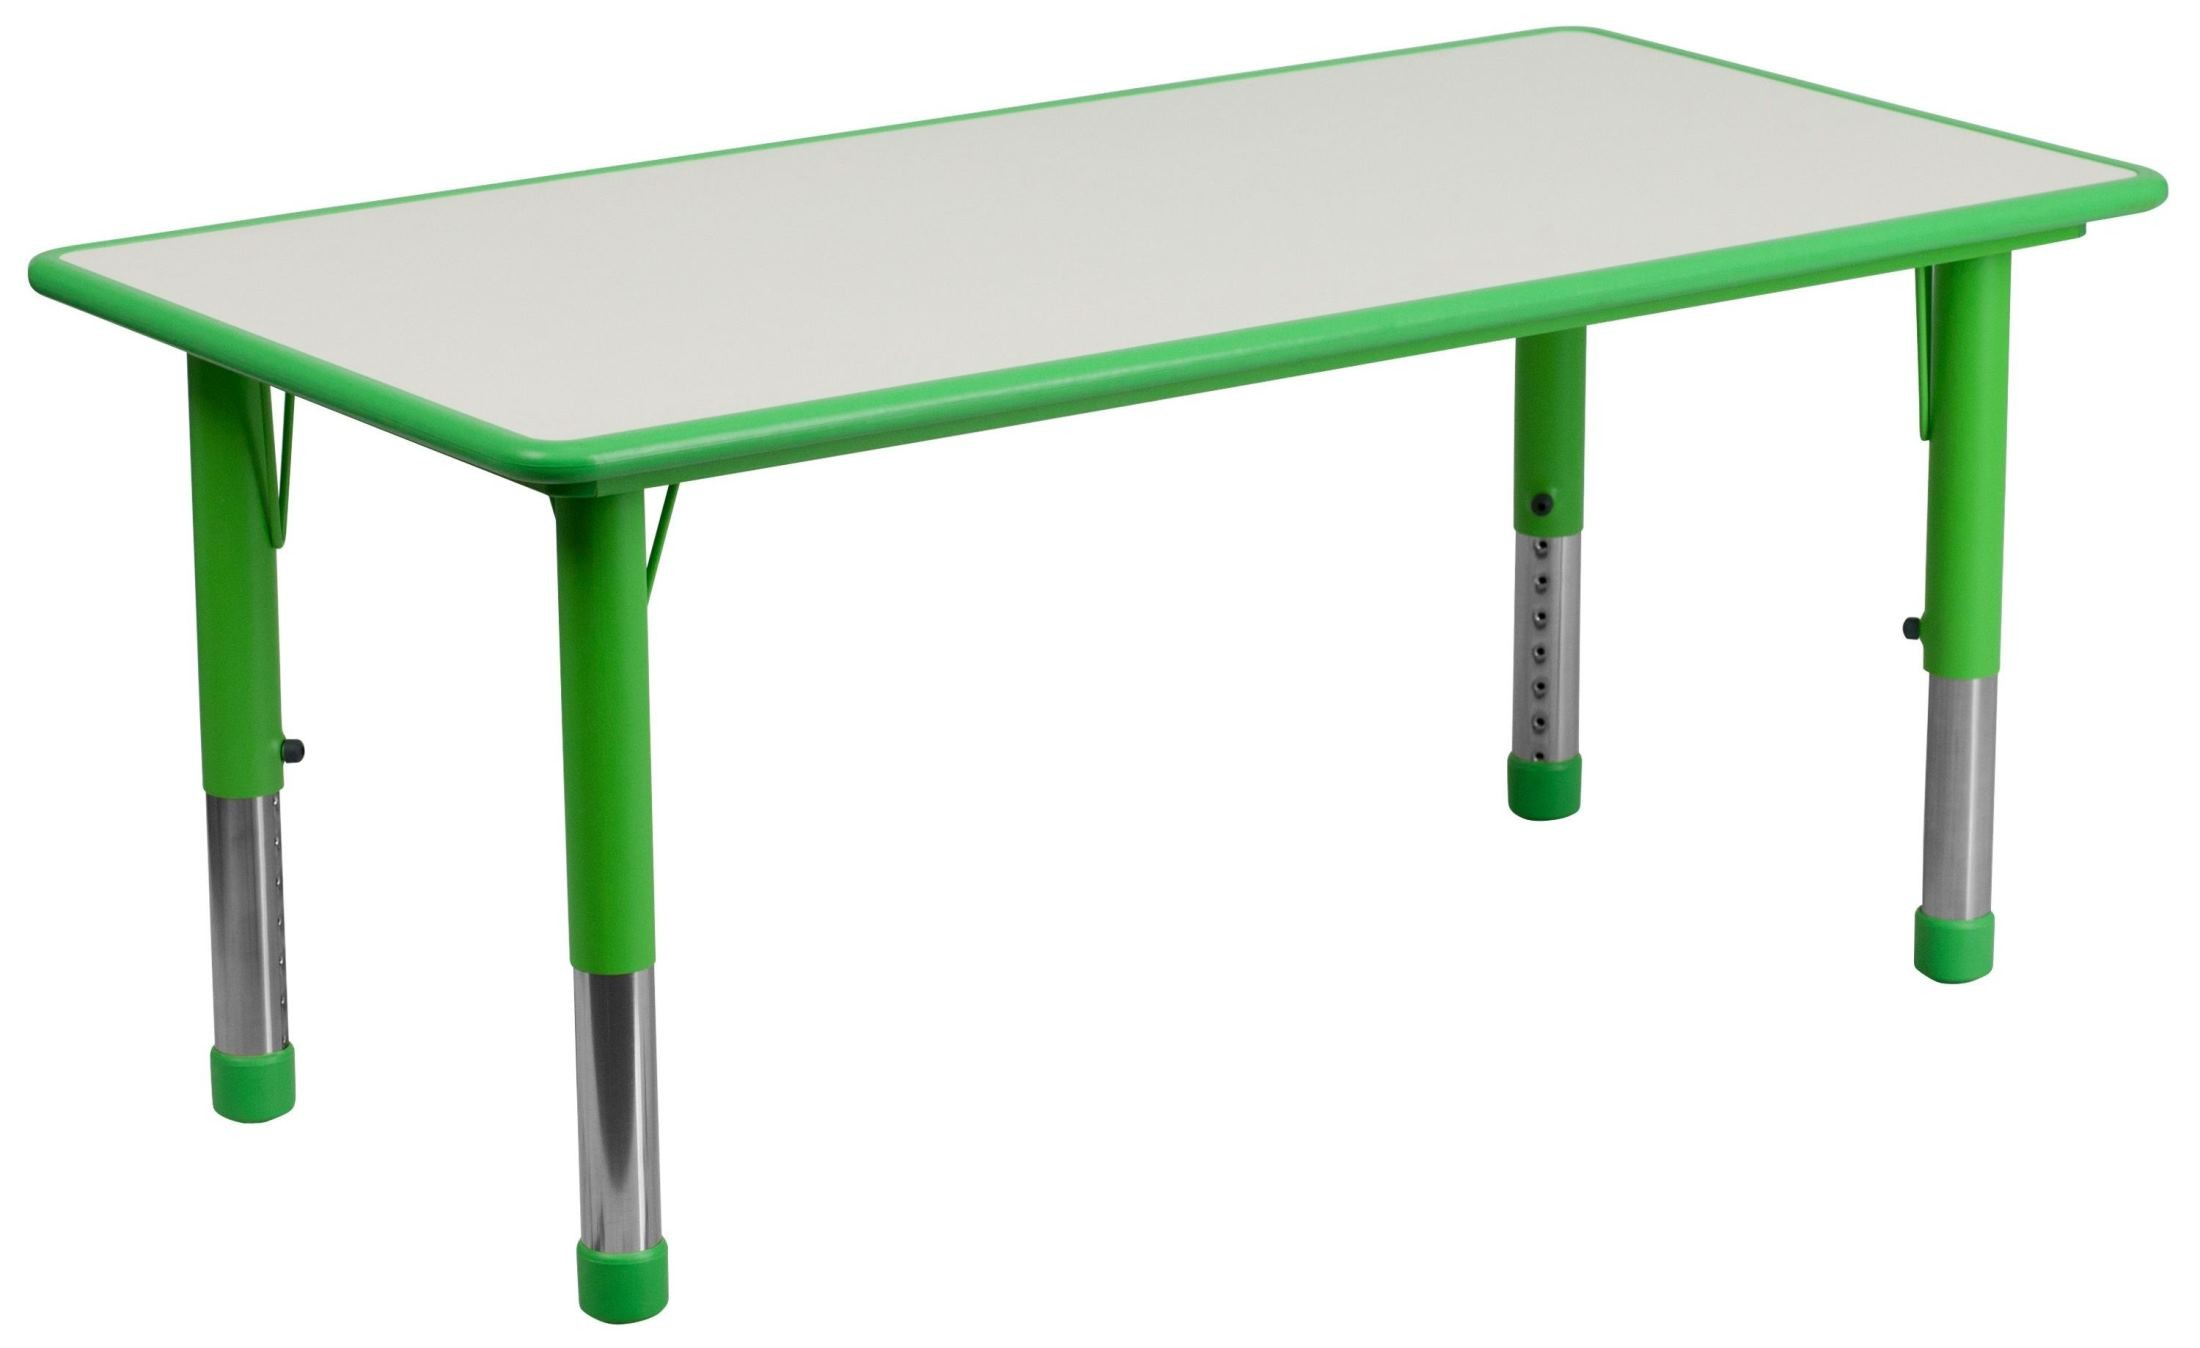 Adjustable Height Activity Table 47 25 39 39 Adjustable Height Rectangular Green Plastic